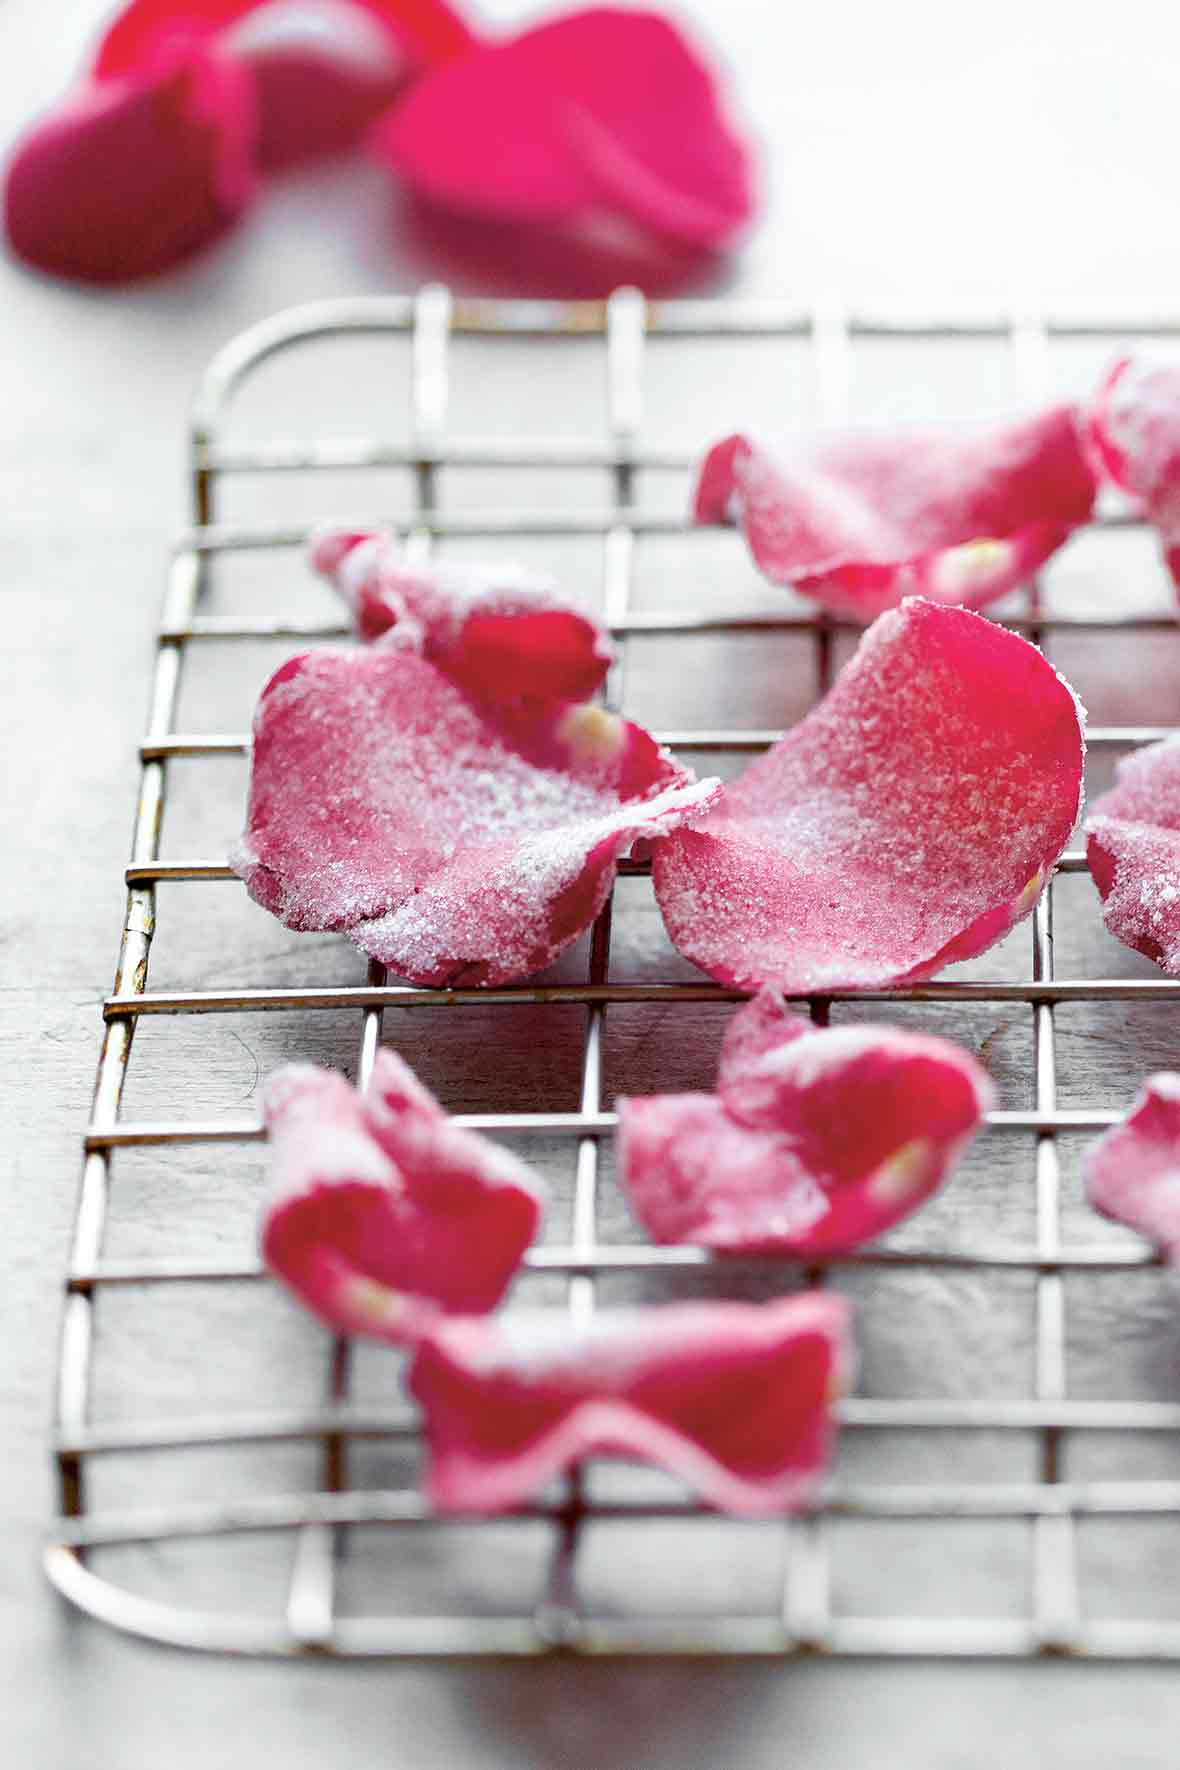 Several candied rose petals on a wire rack.